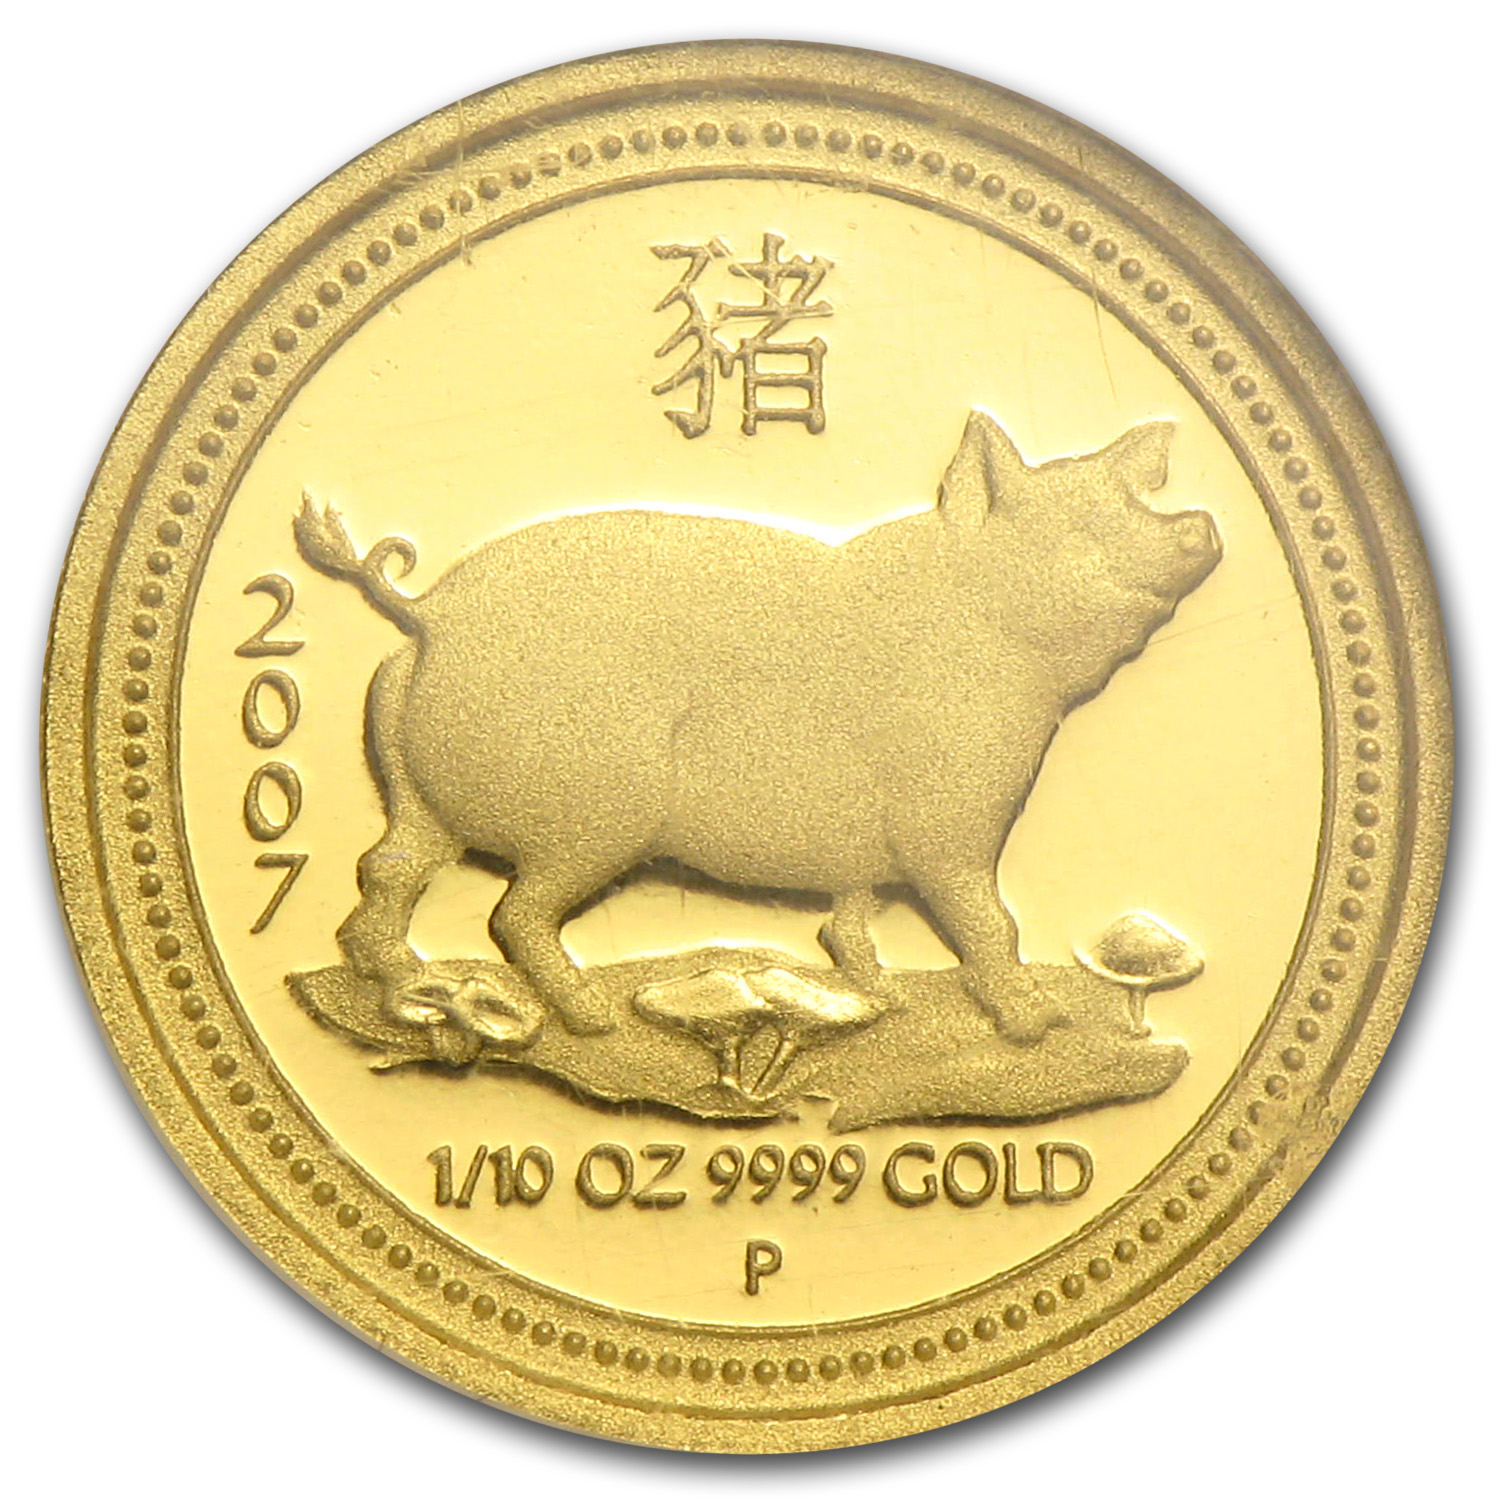 2007 1/10 oz Gold Lunar Year of the Pig PF-70 NGC (Series I)